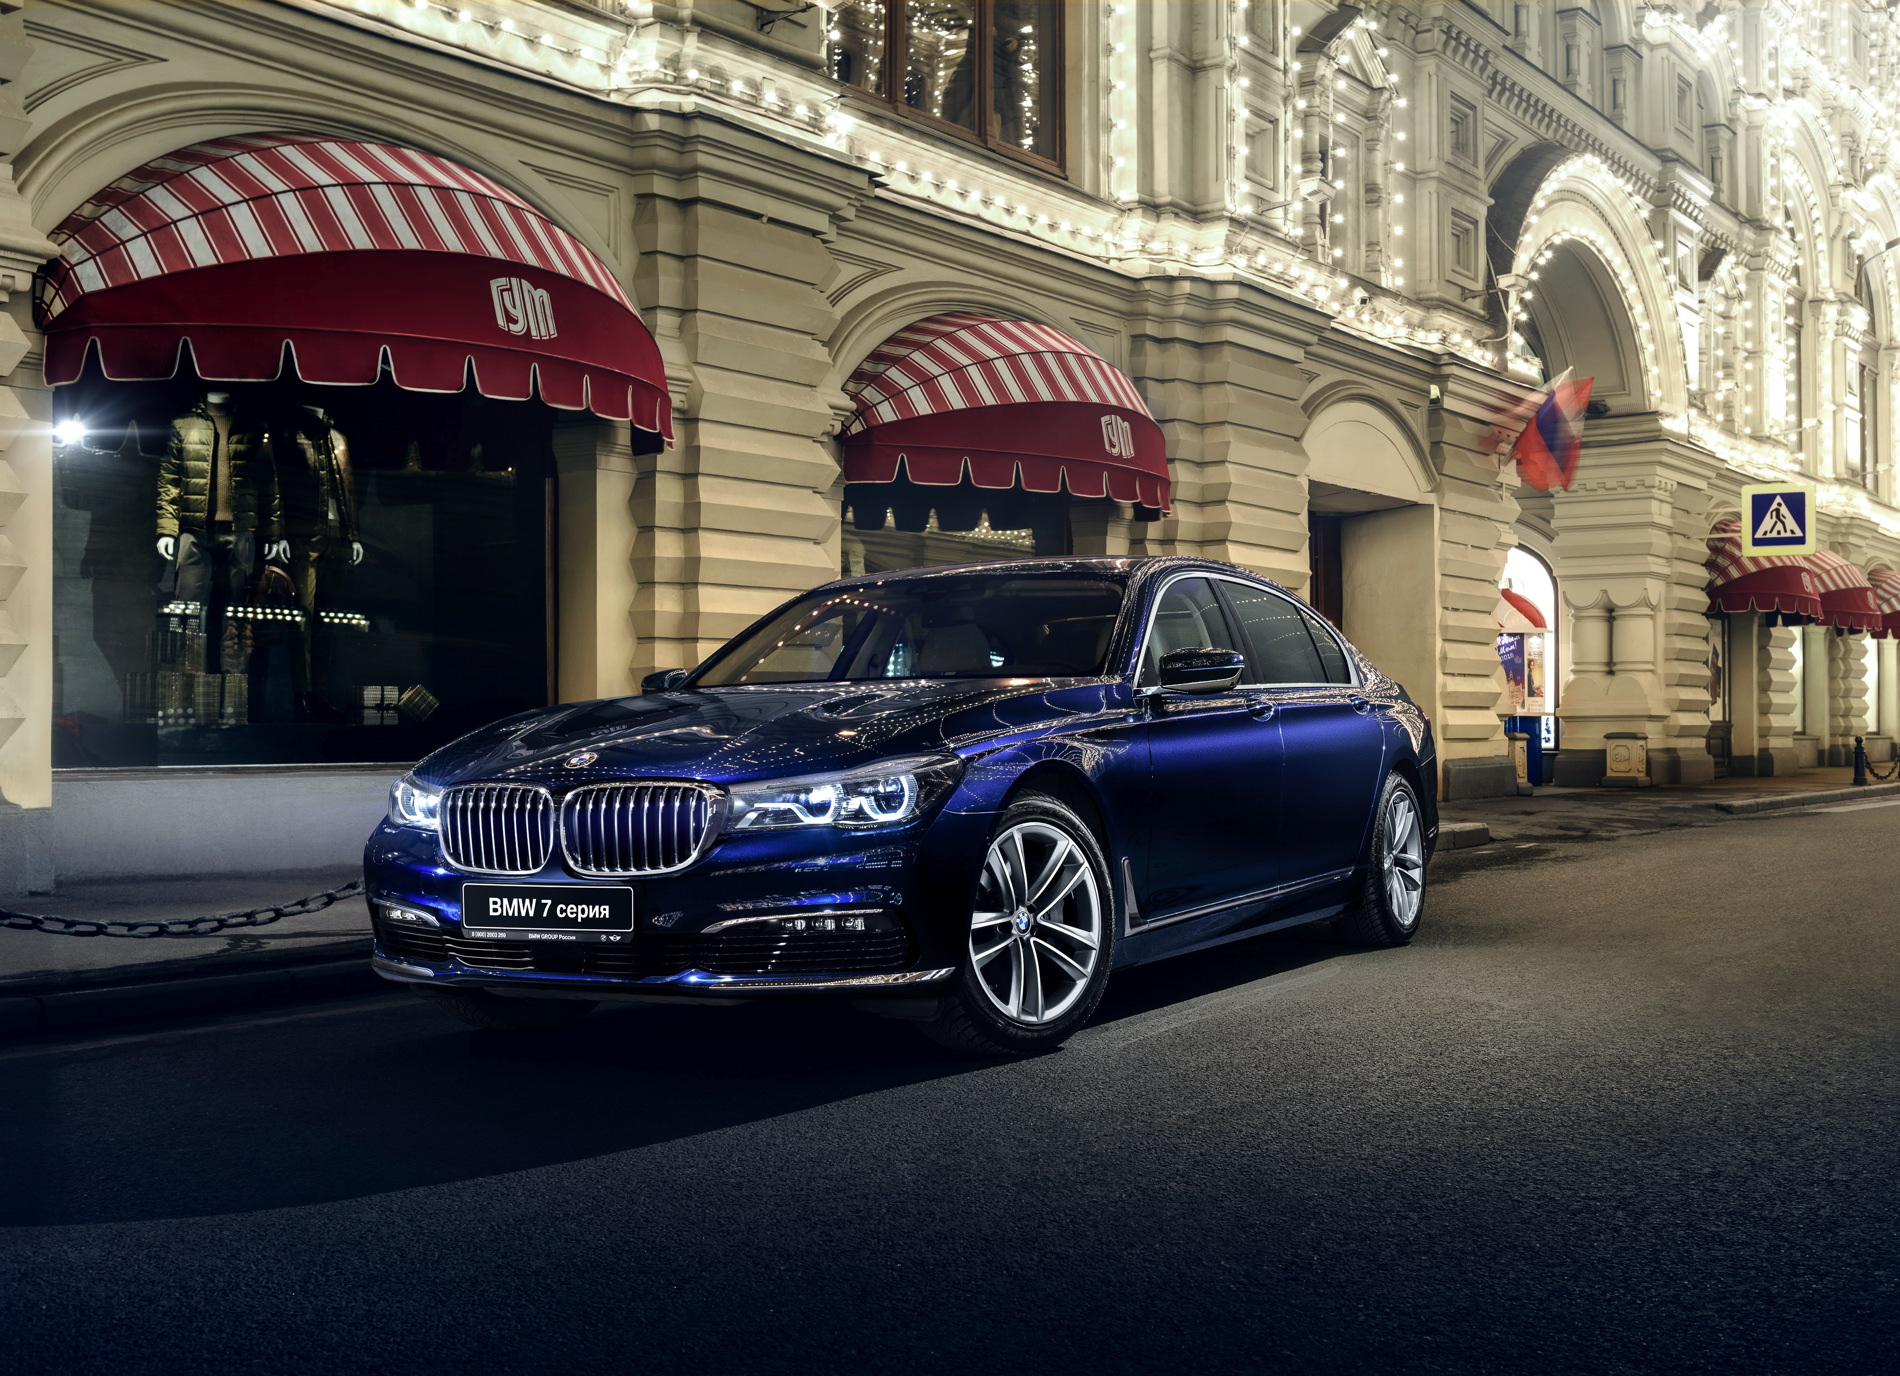 Bmw 740li Xdrive Will Join The 7 Series Lineup In Spring 2016